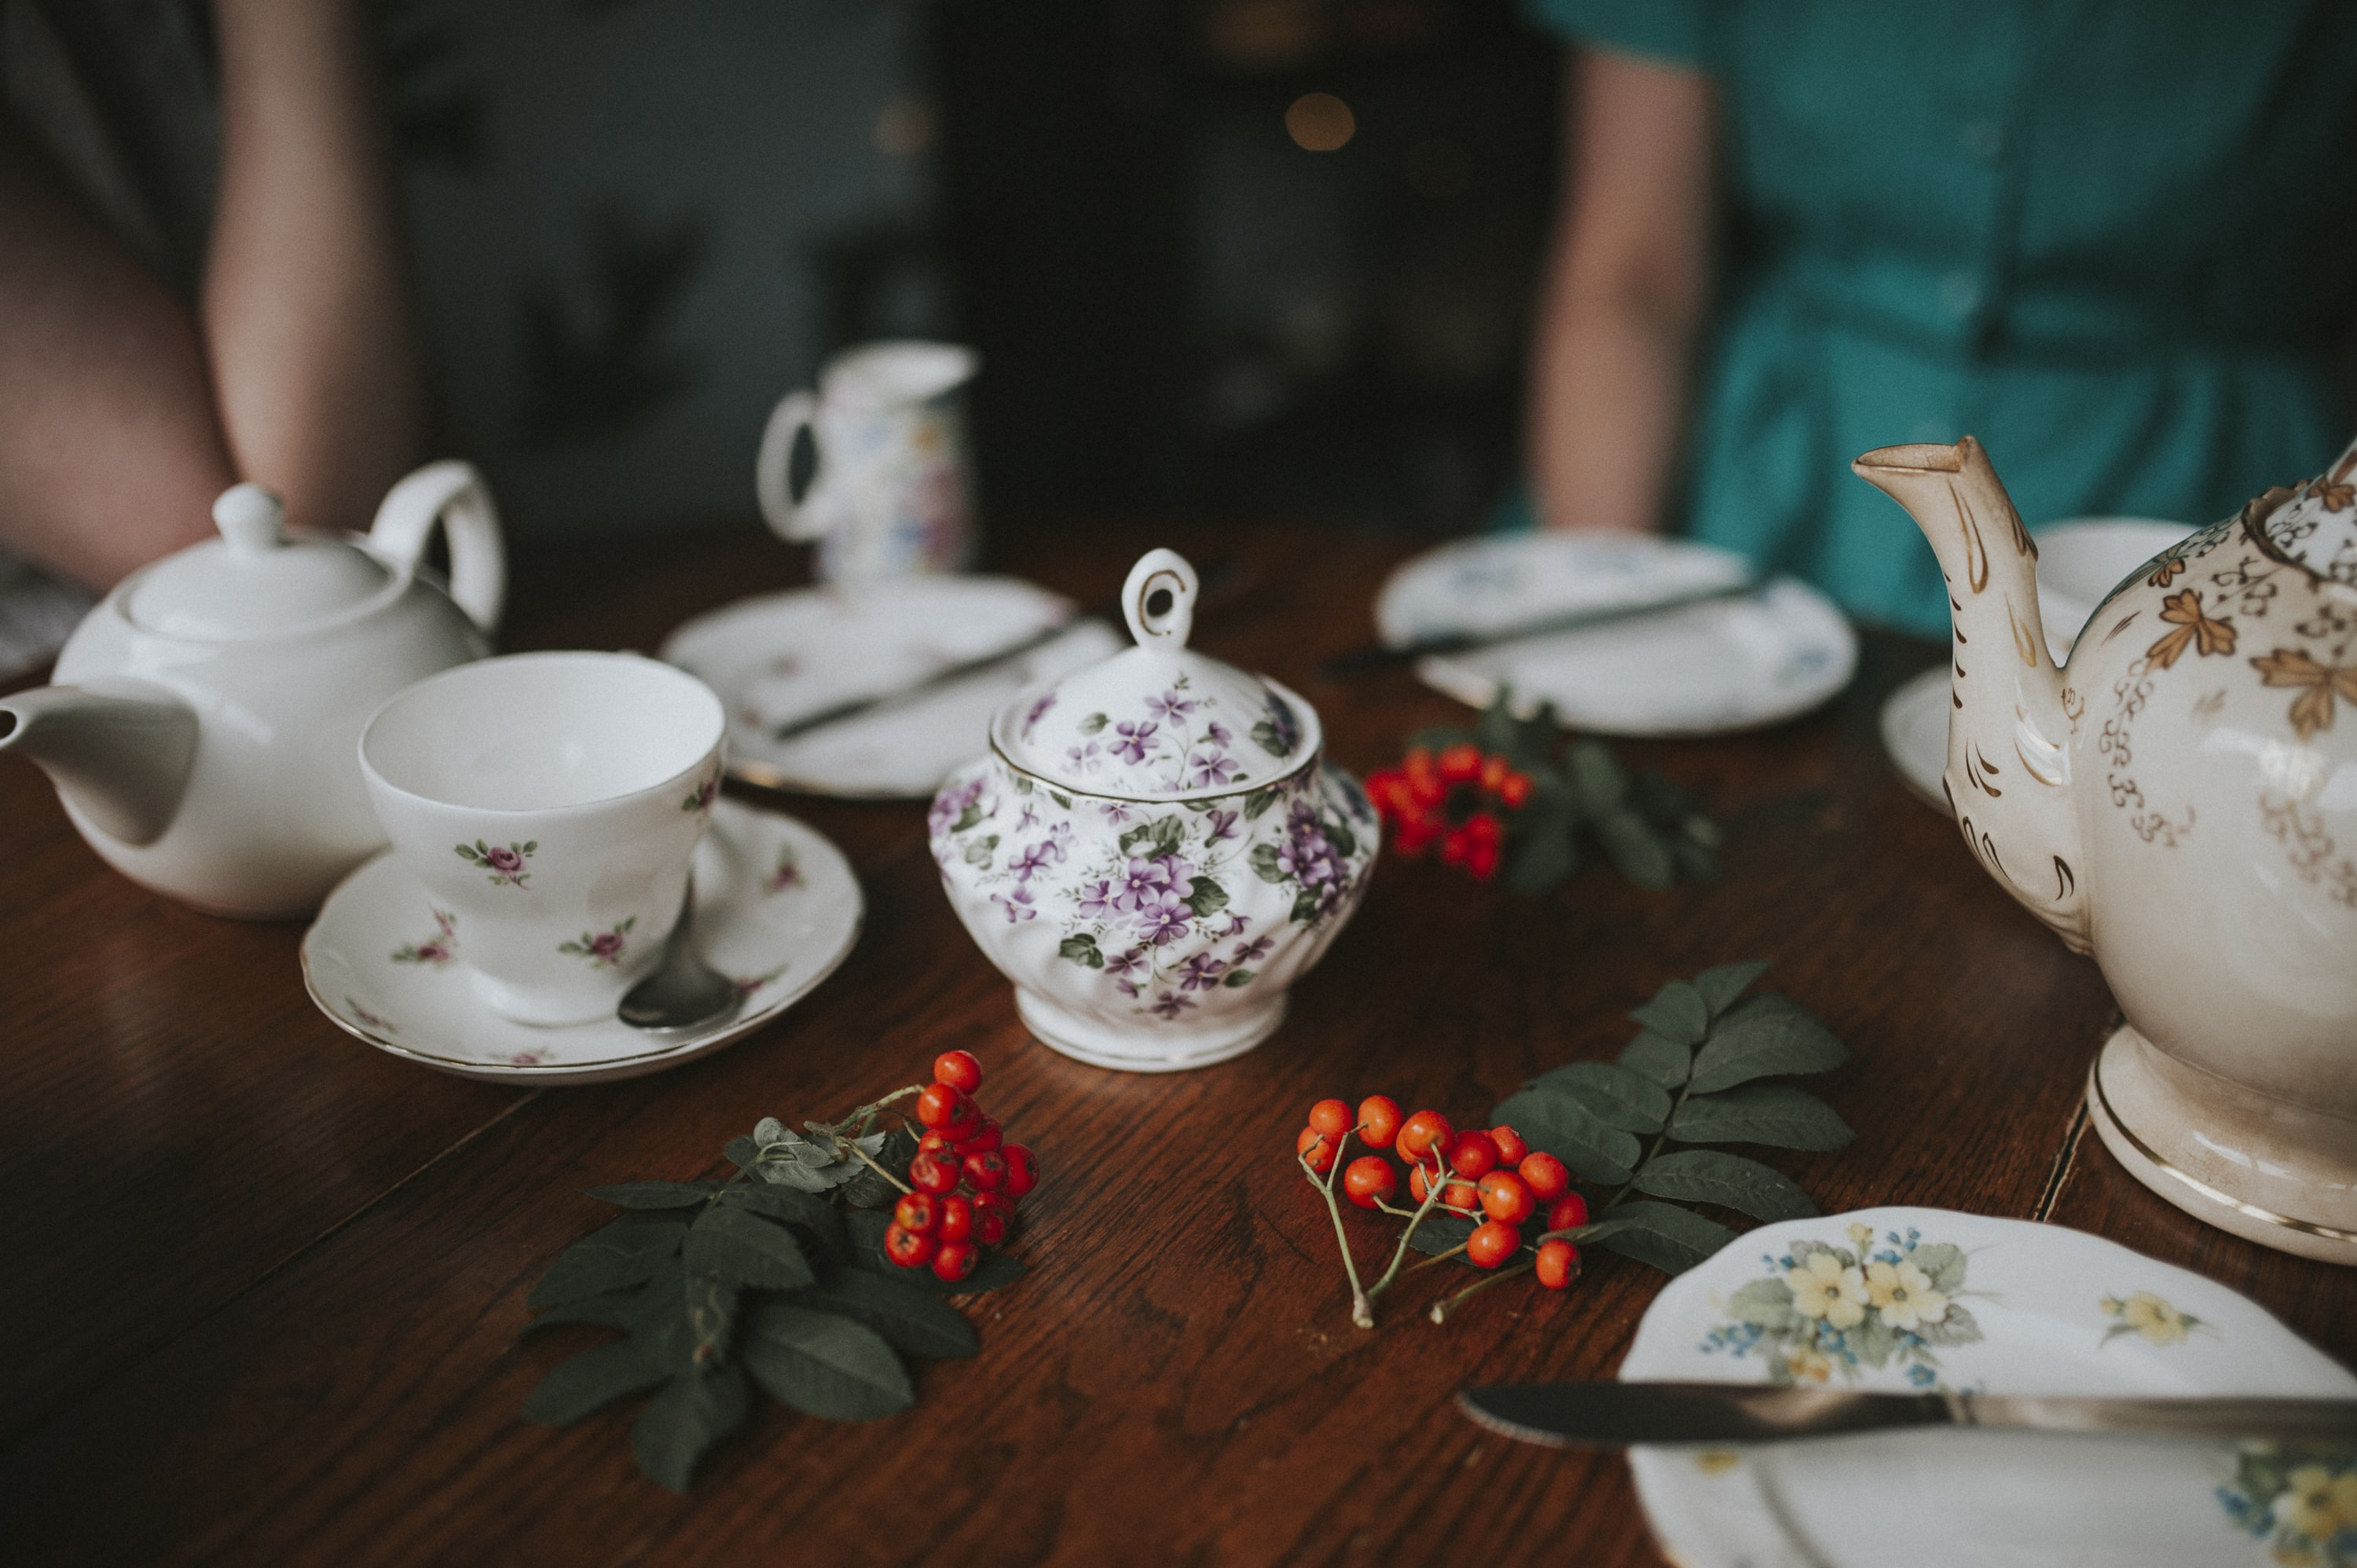 photo of white floral tea set on brown wooden table